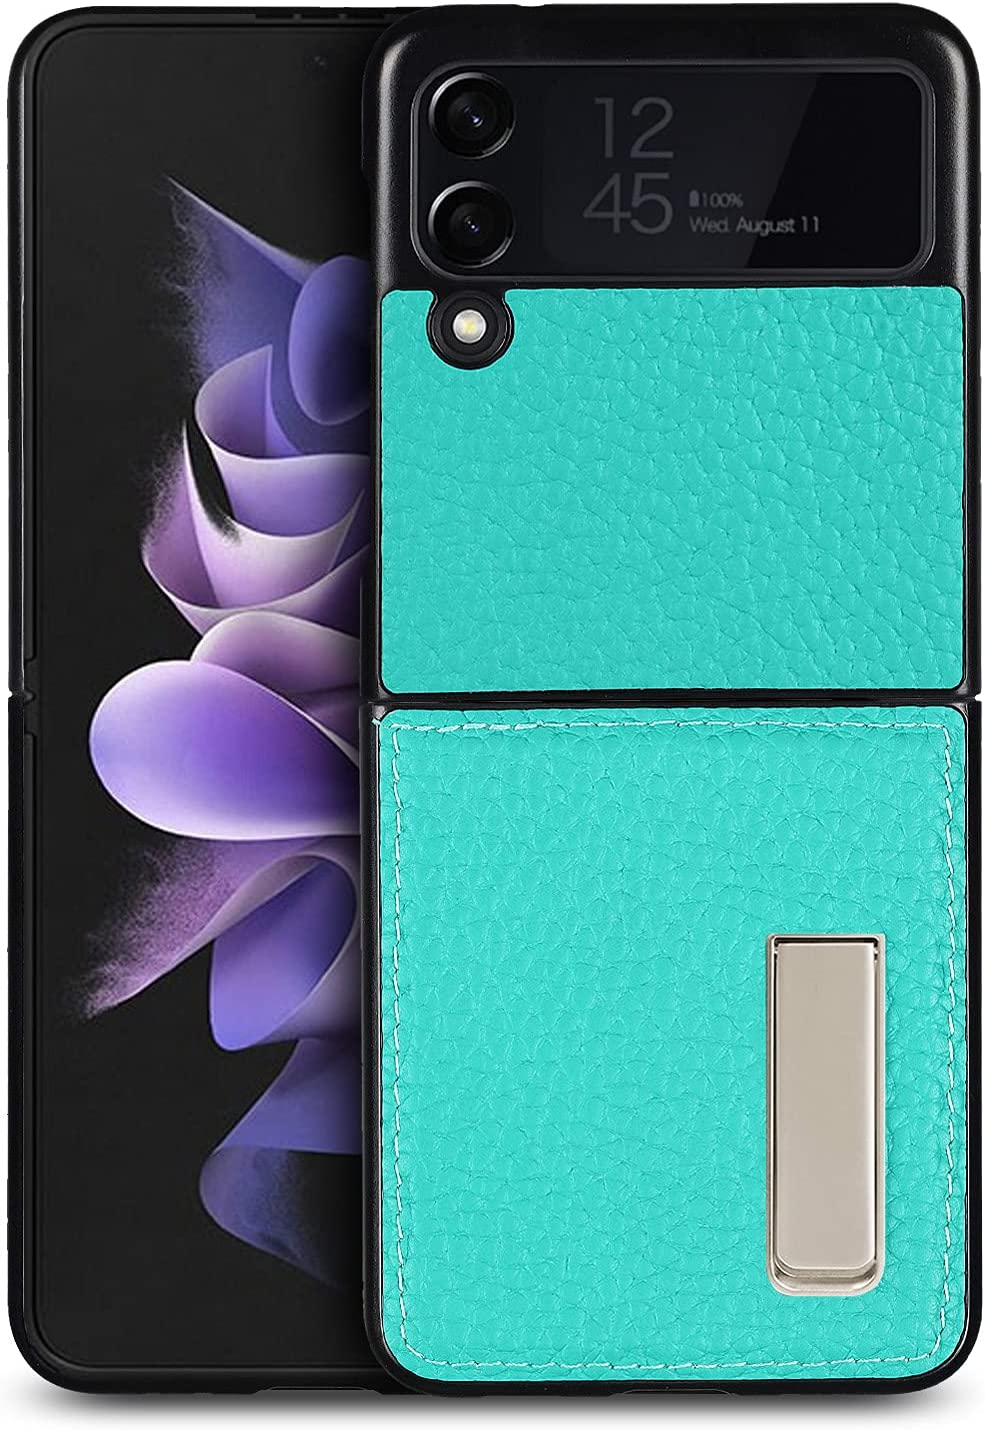 iCoverCase Designed for Samsung Galaxy Z Flip 3 5G Case (2021) with Stand, Magnetic Kickstand Ultra-Thin Genuine Leather Protective Case - (Blue-Green)